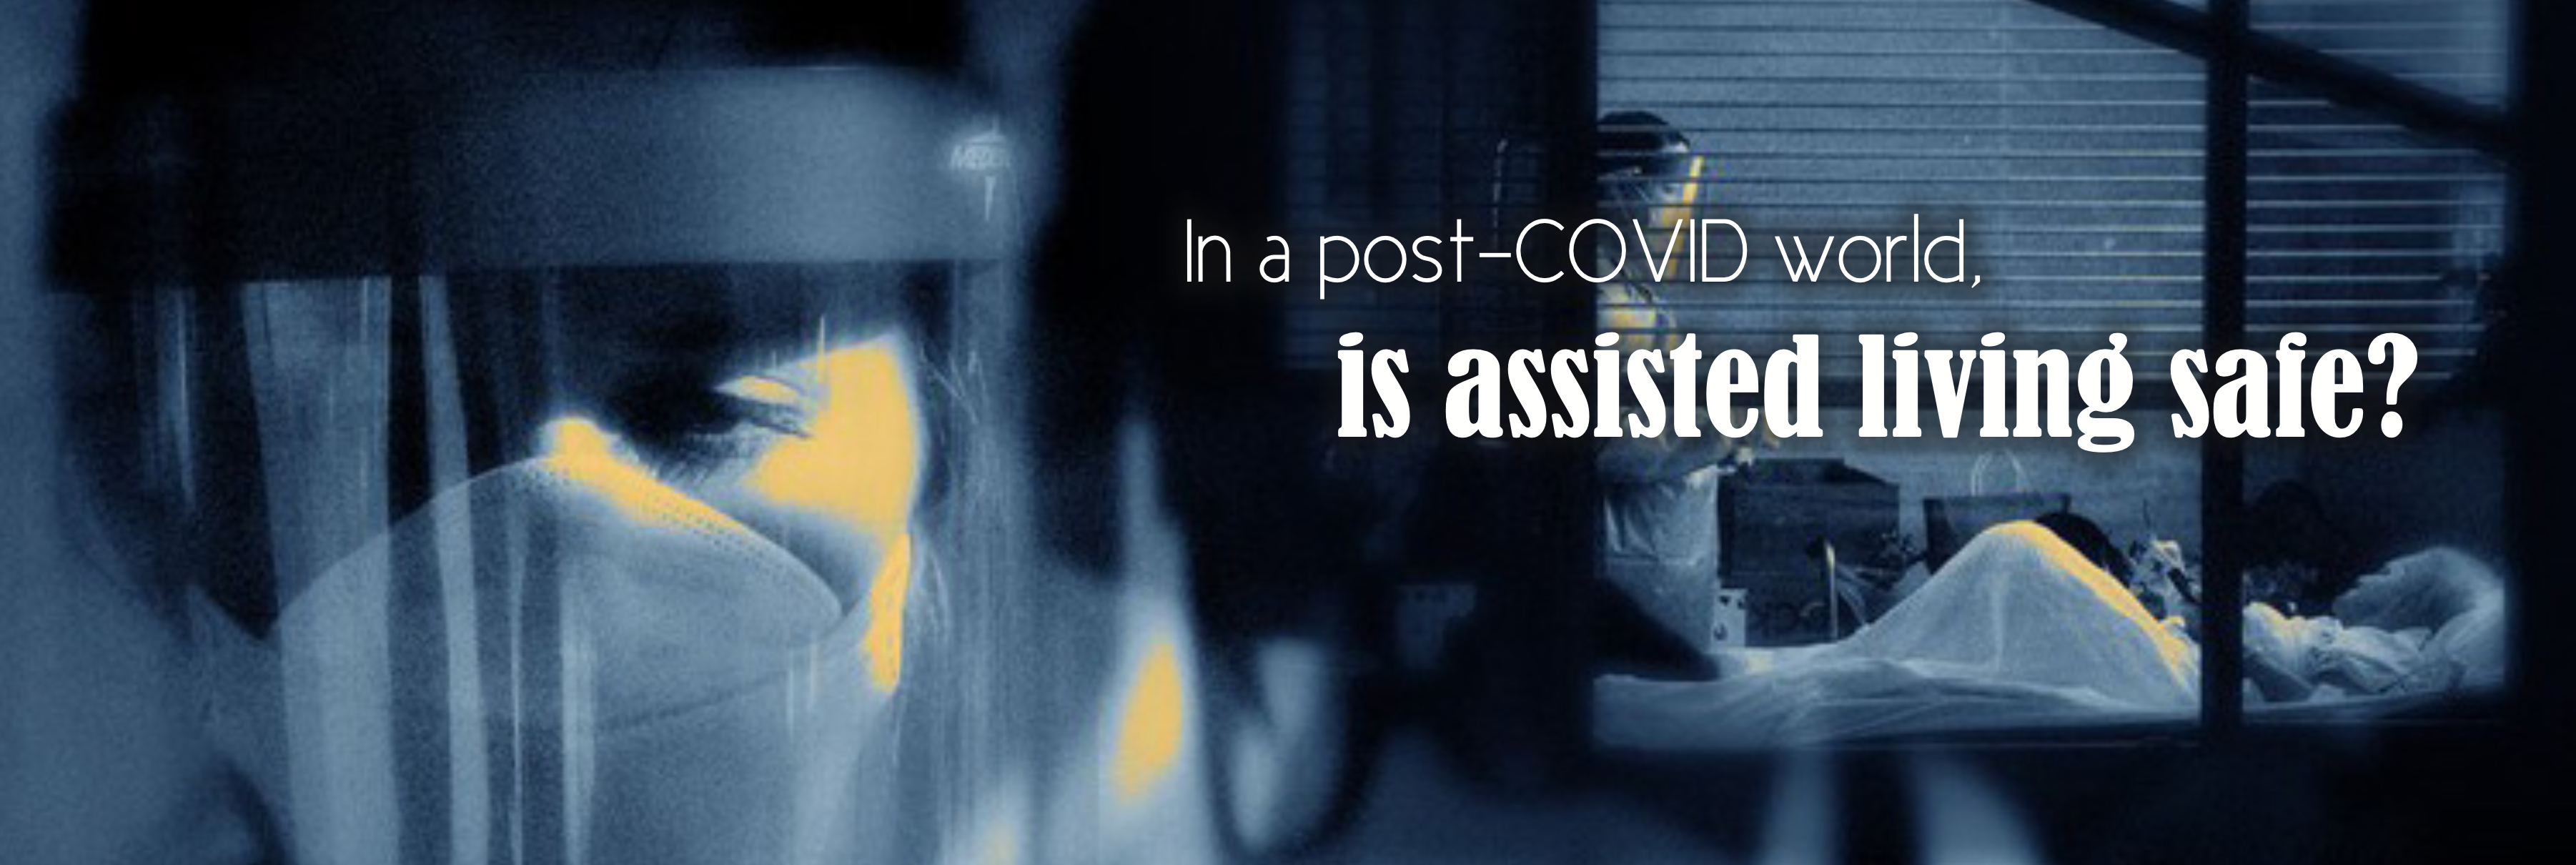 In a post - COVID world, is assisted living safe?